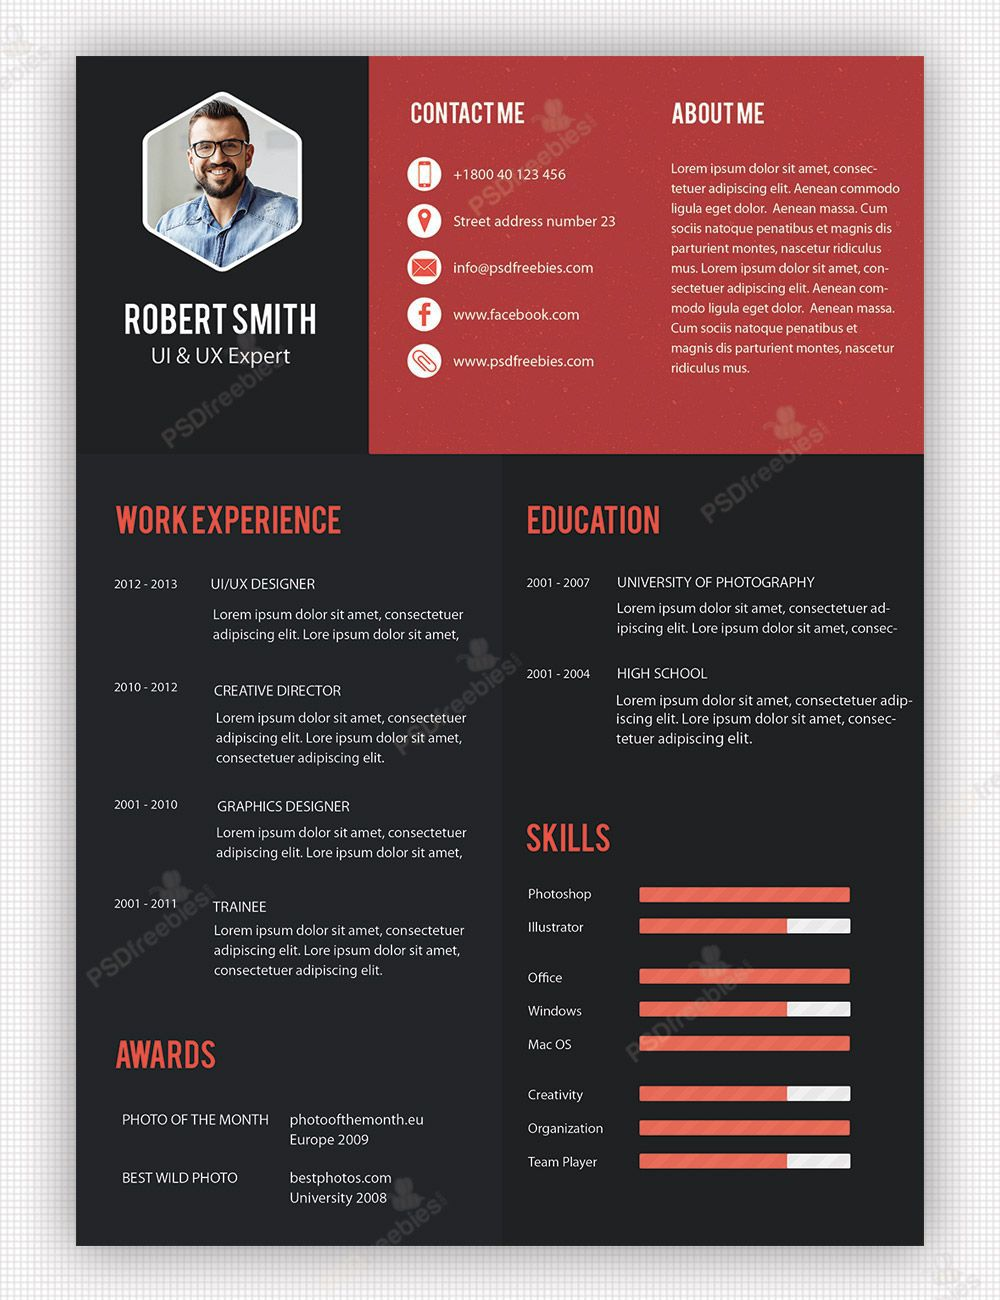 002 Unusual Cv Design Photoshop Template Free High Def  Creative Resume Psd DownloadFull